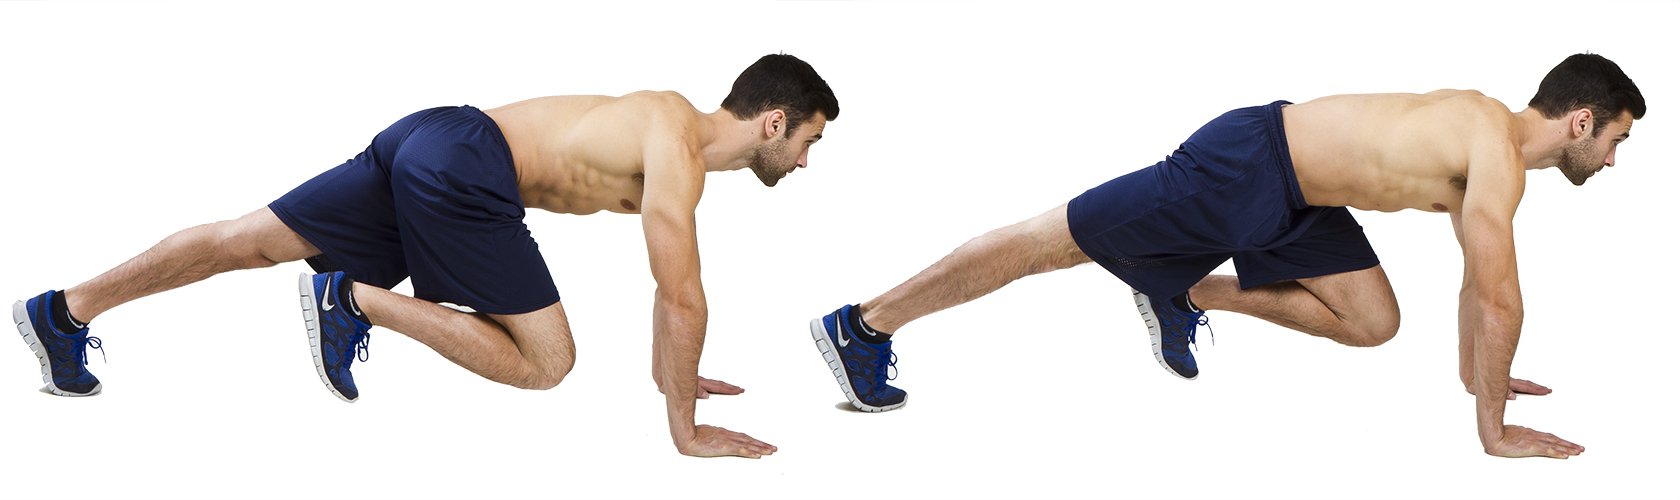 HIIT Exercise: How To Do Mountain Climbers